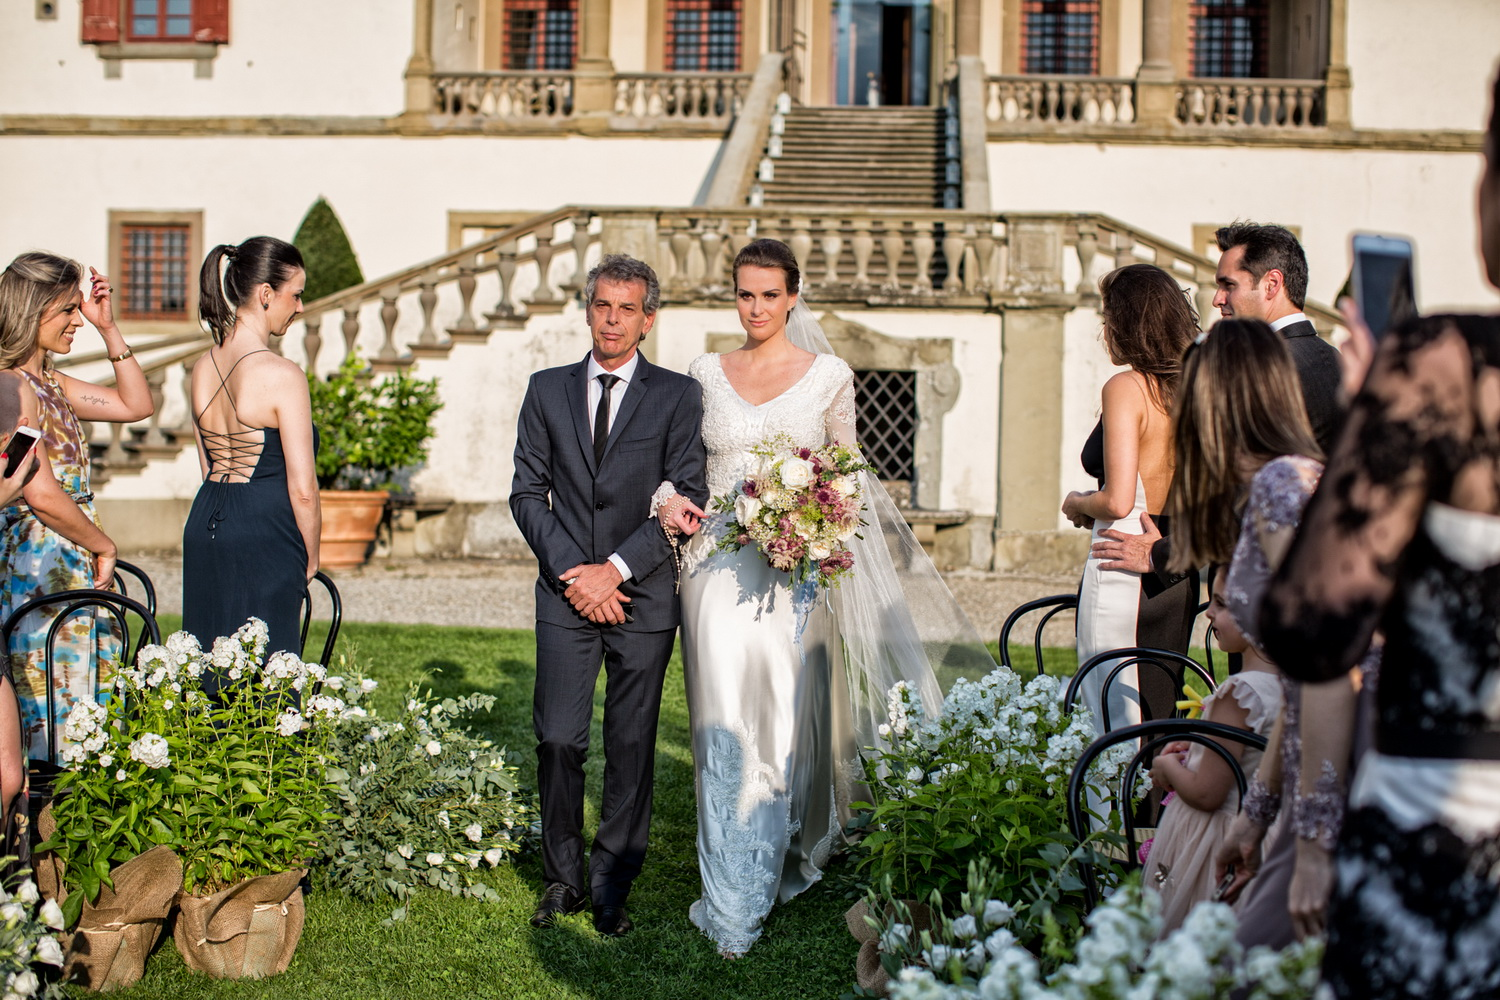 Destination Wedding Toscana | Caroline e Fernando destination wedding na toscana | caroline e fernando Destination Wedding na Toscana | Caroline e Fernando marco zammarchi destination wedding 17